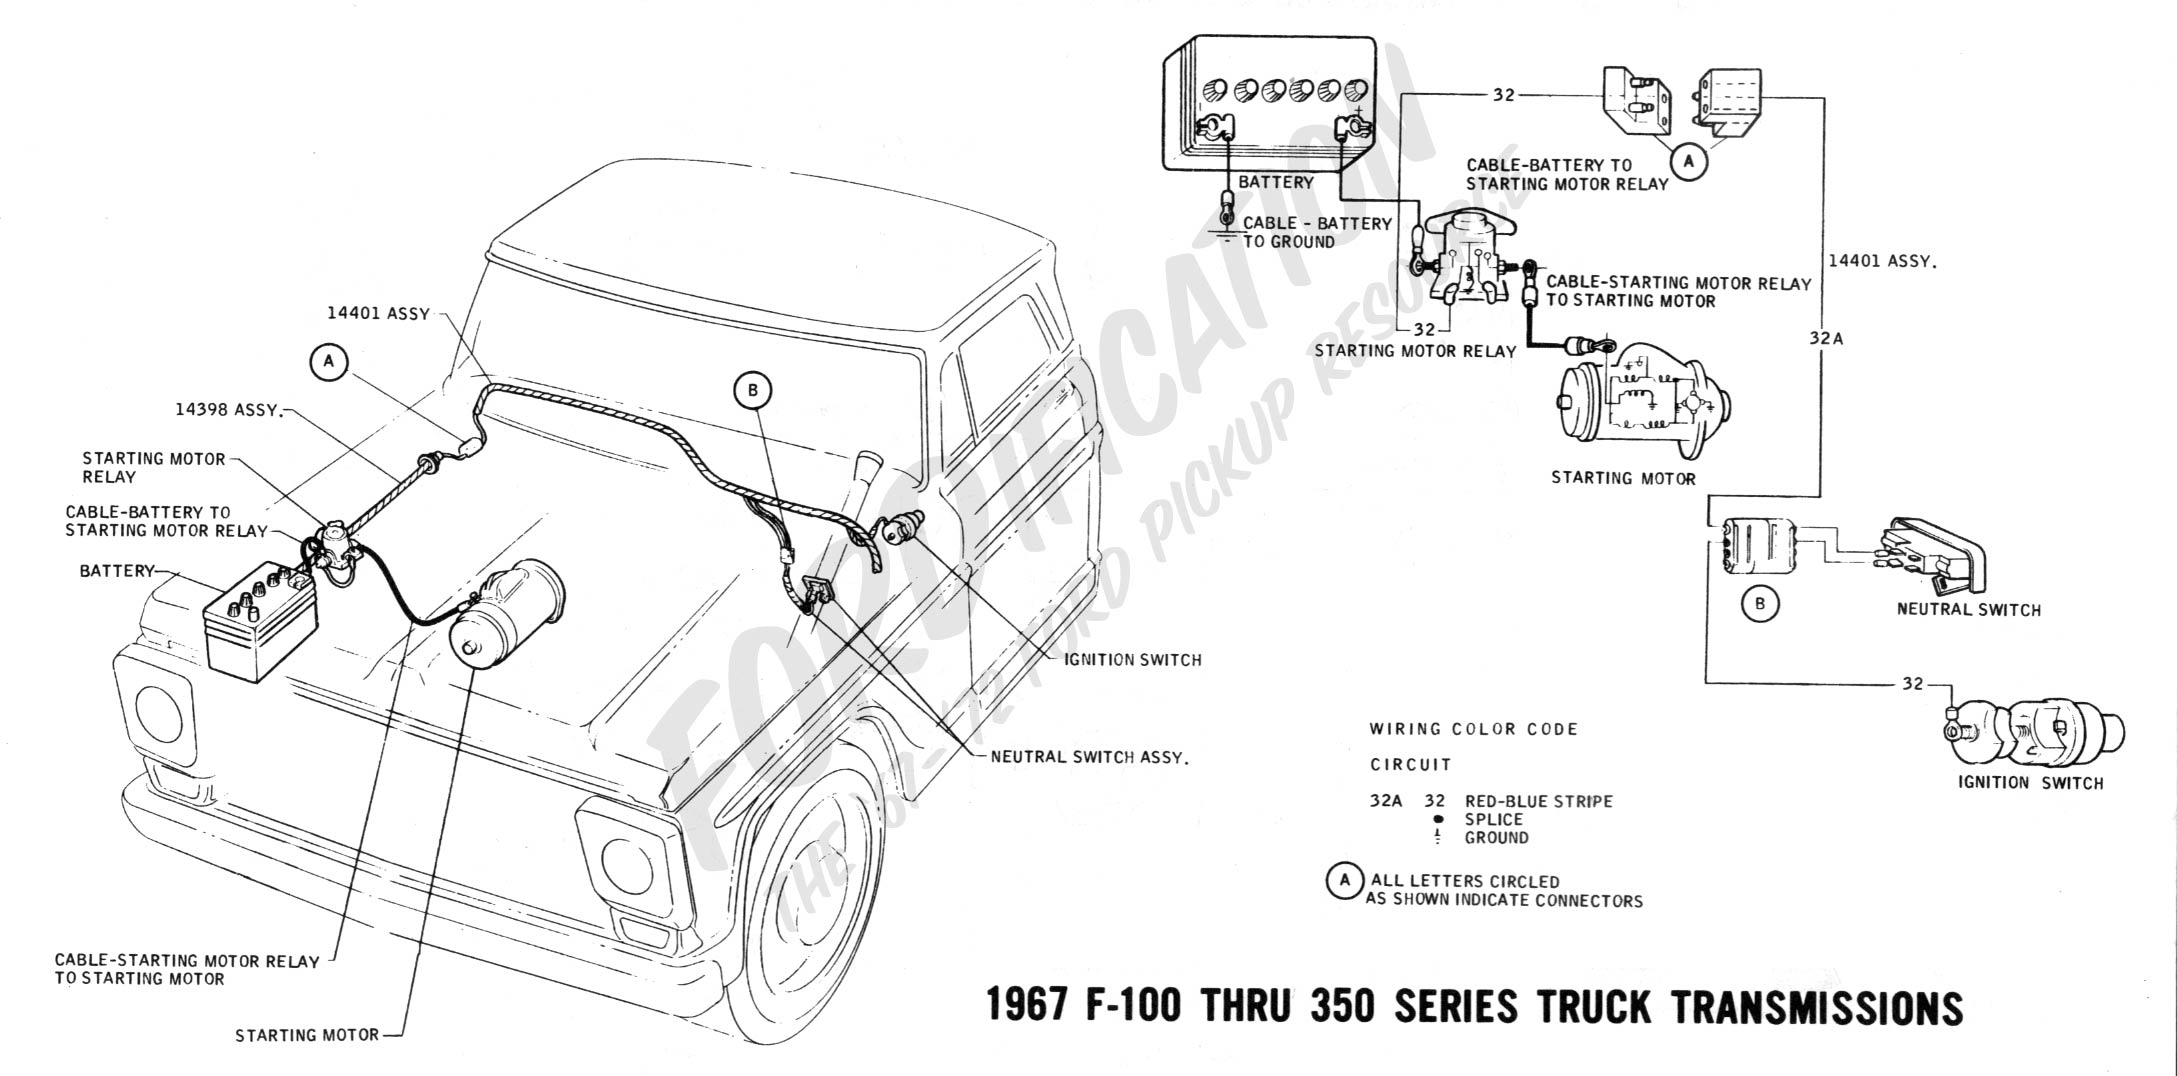 Schematics h on 77 ford ltd wiring diagram